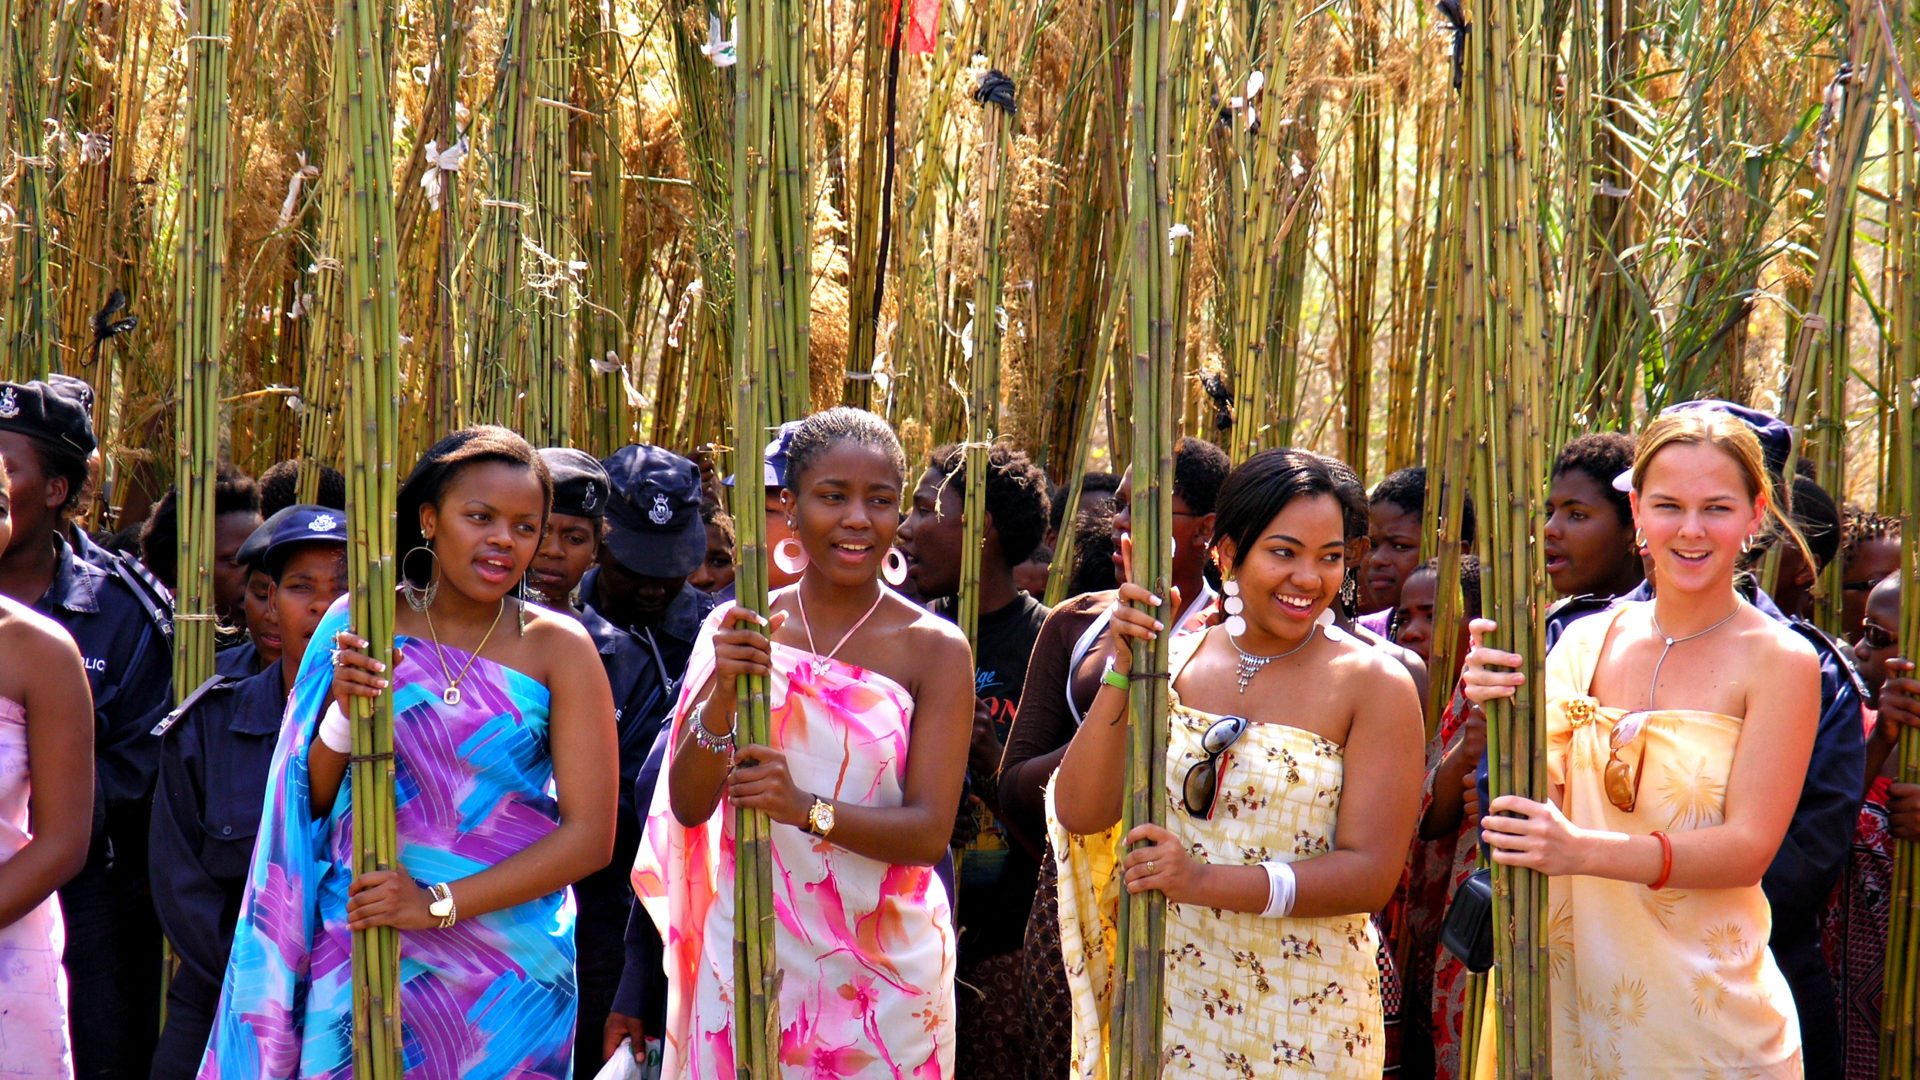 Tourist Attractions in Eswatini (Swaziland)